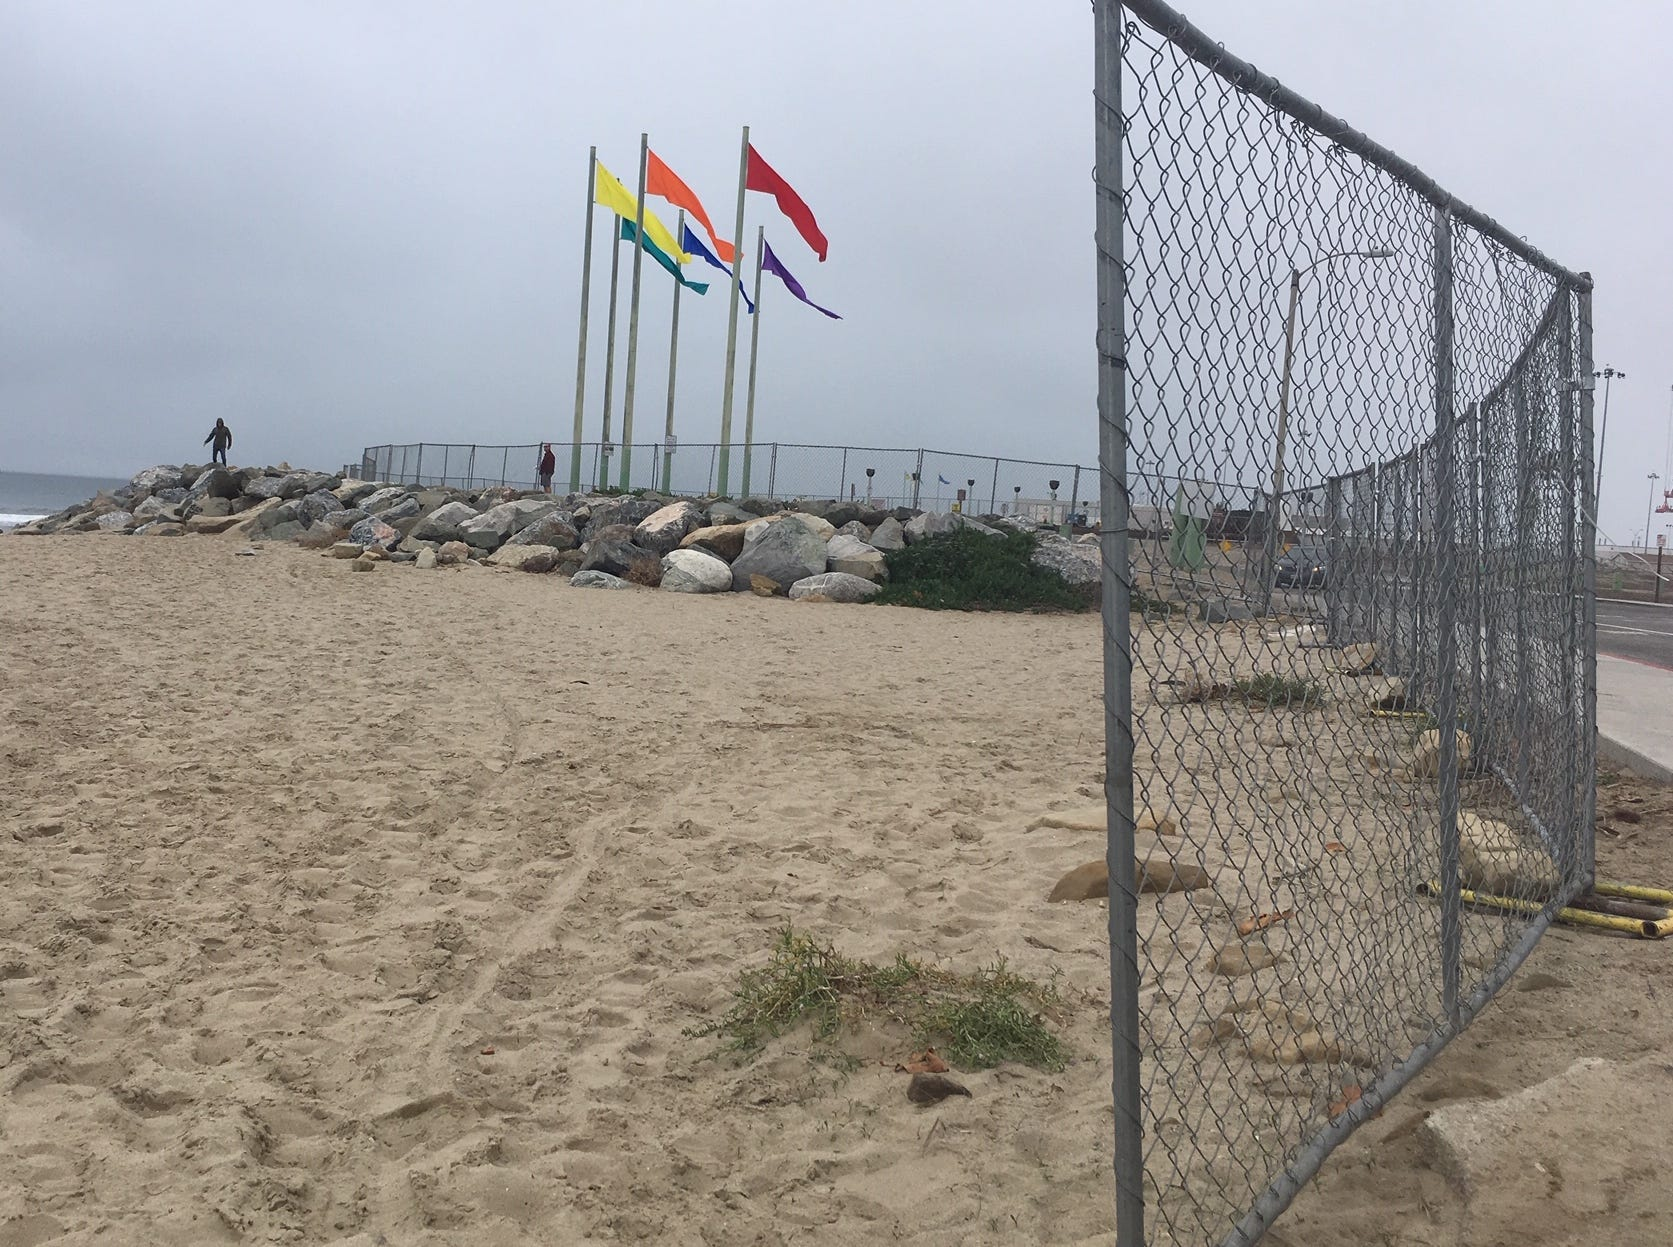 A fence signals a section of Port Hueneme's coastline is off-limits as the Army Corps of Engineers works on a dredging project.